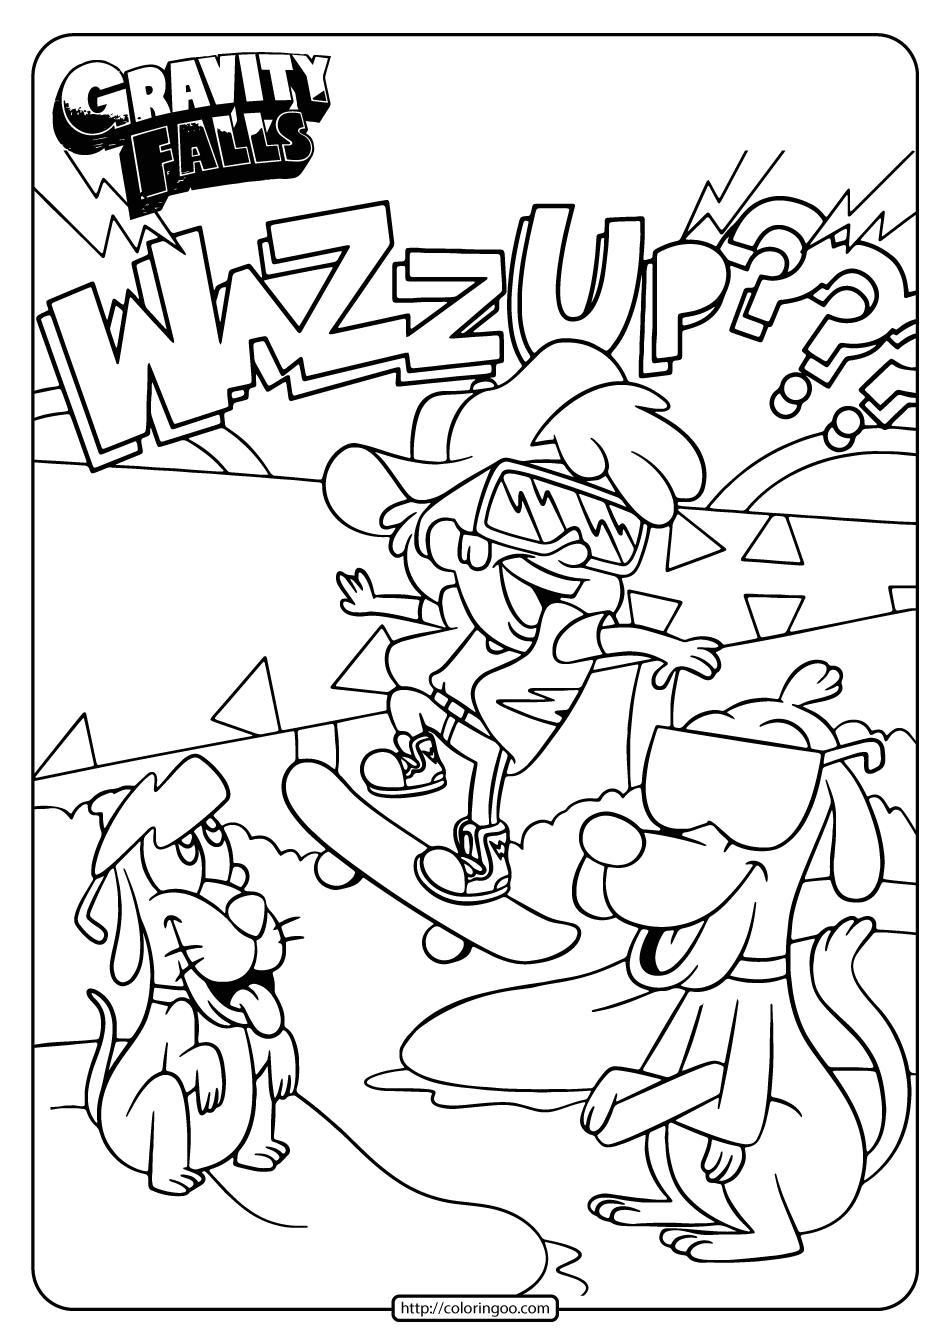 Gravity Falls Dipper Skateboarding Coloring Page